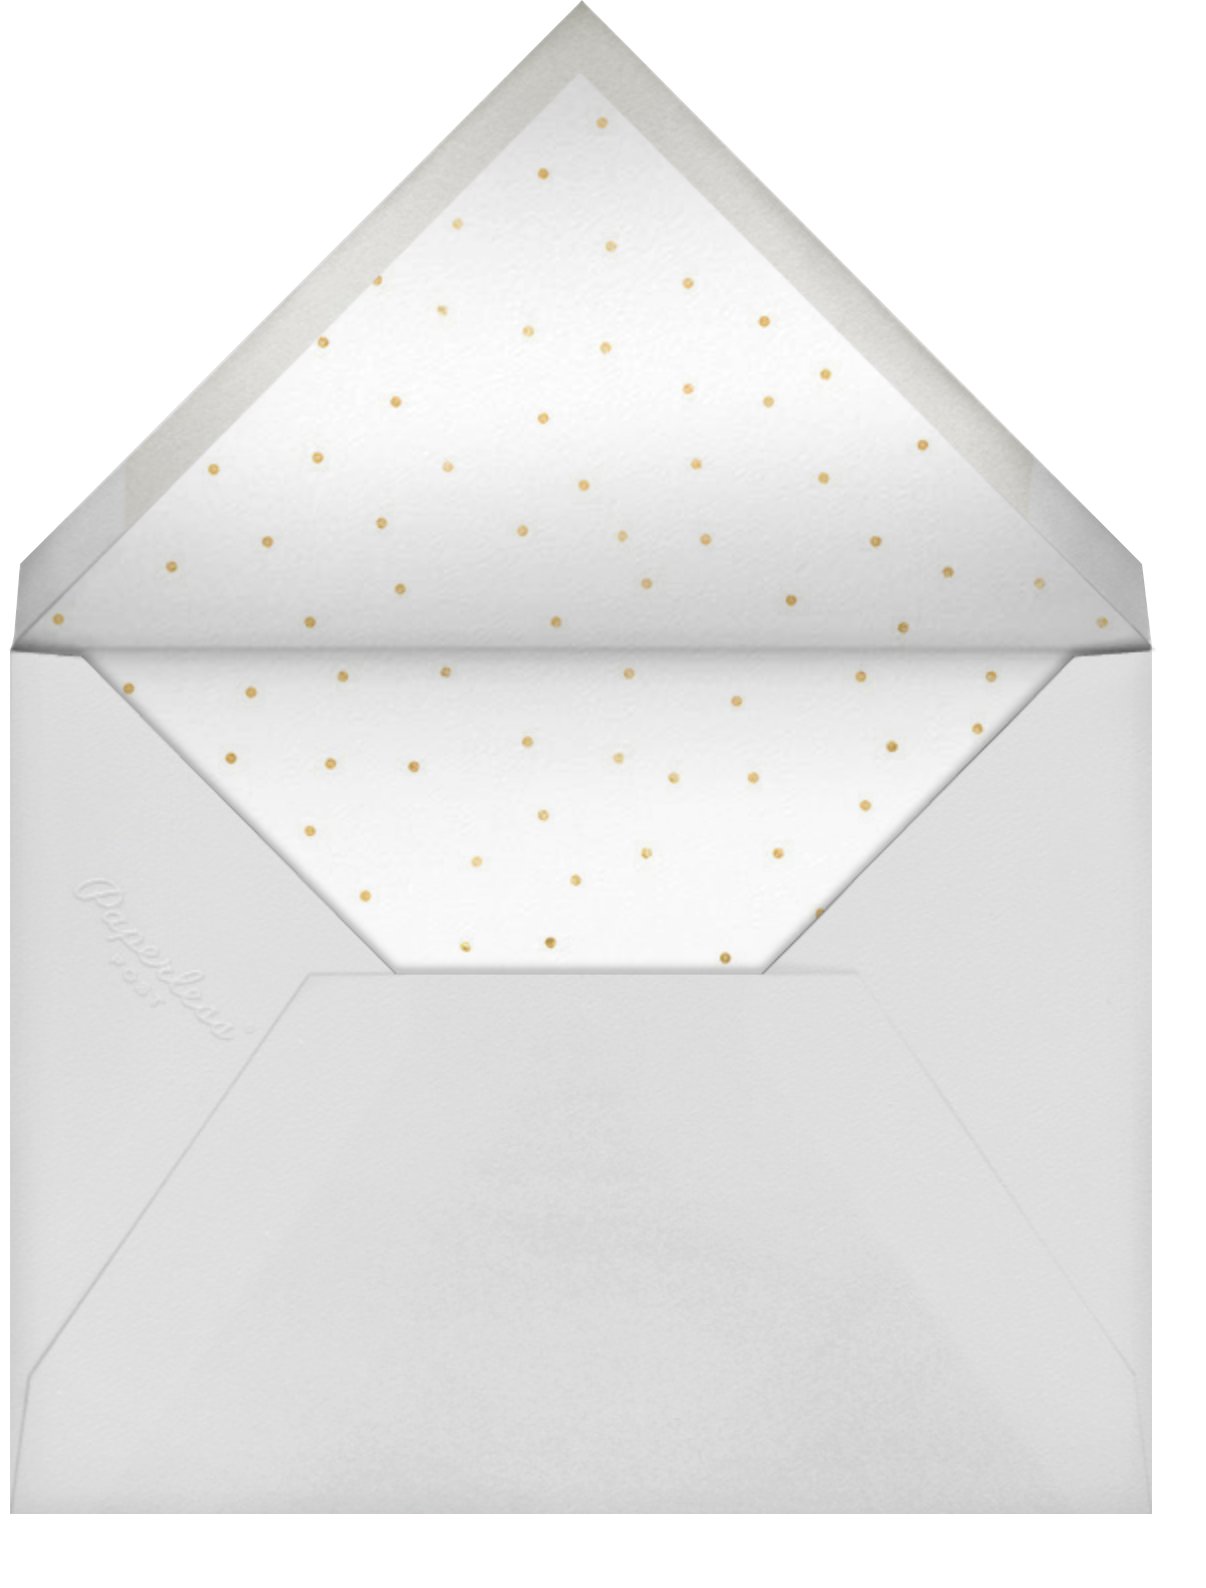 Firework - Satin Gold - Paperless Post - New Year - envelope back